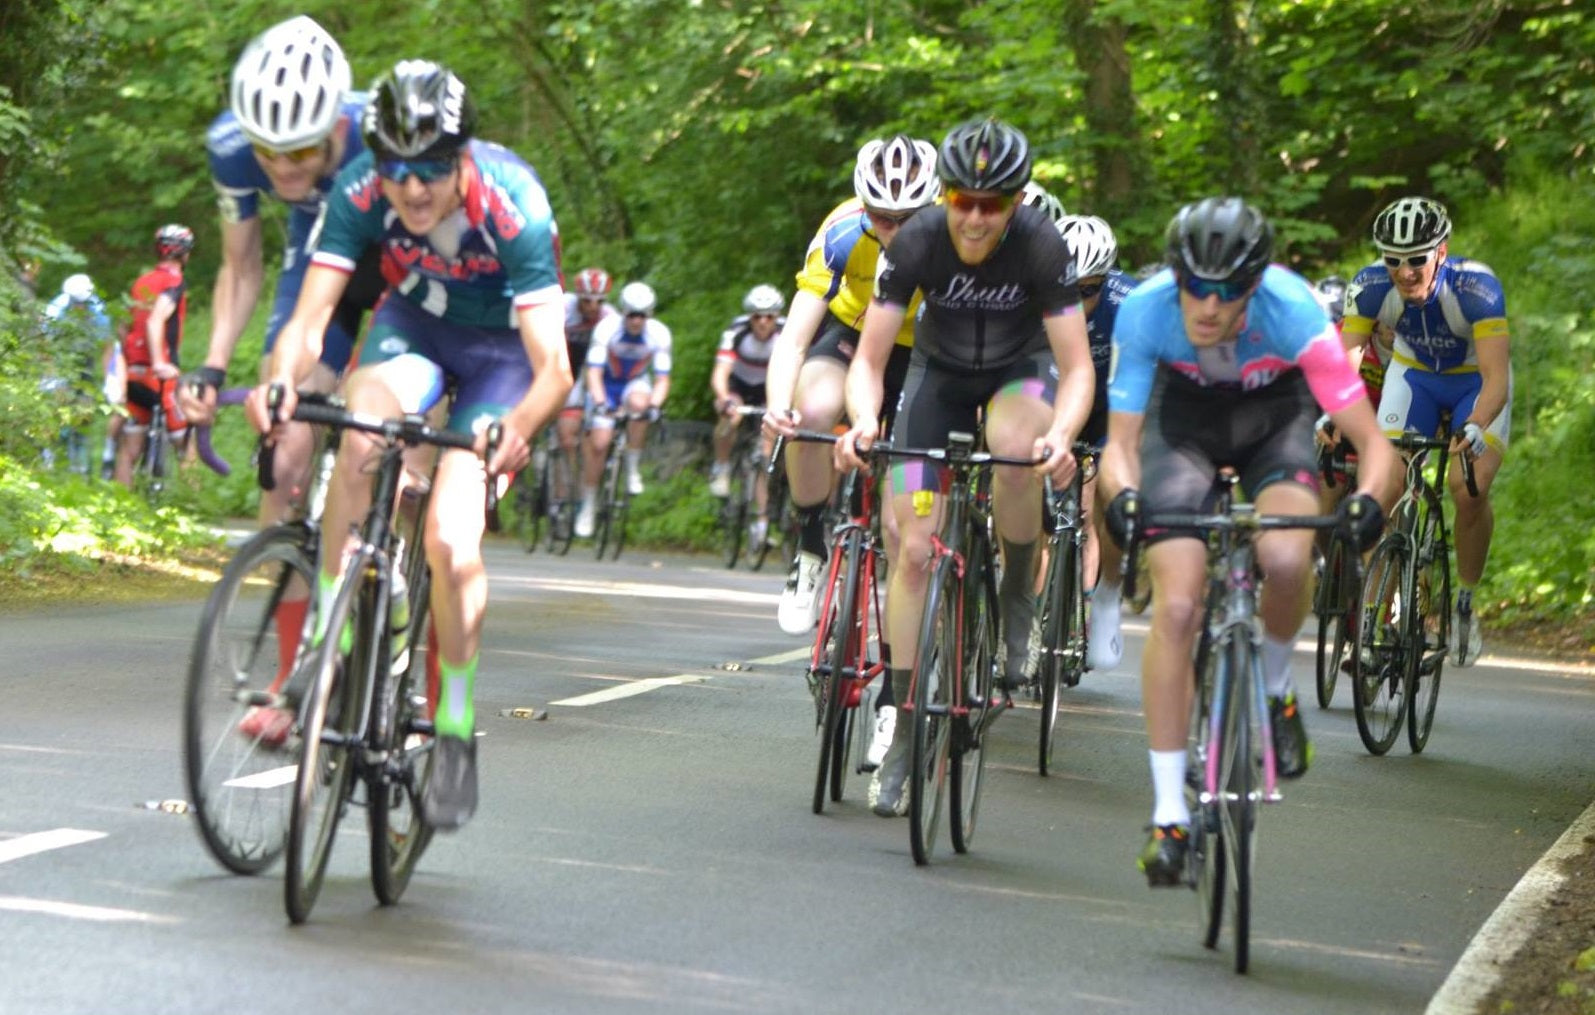 Banbury Star Road Race